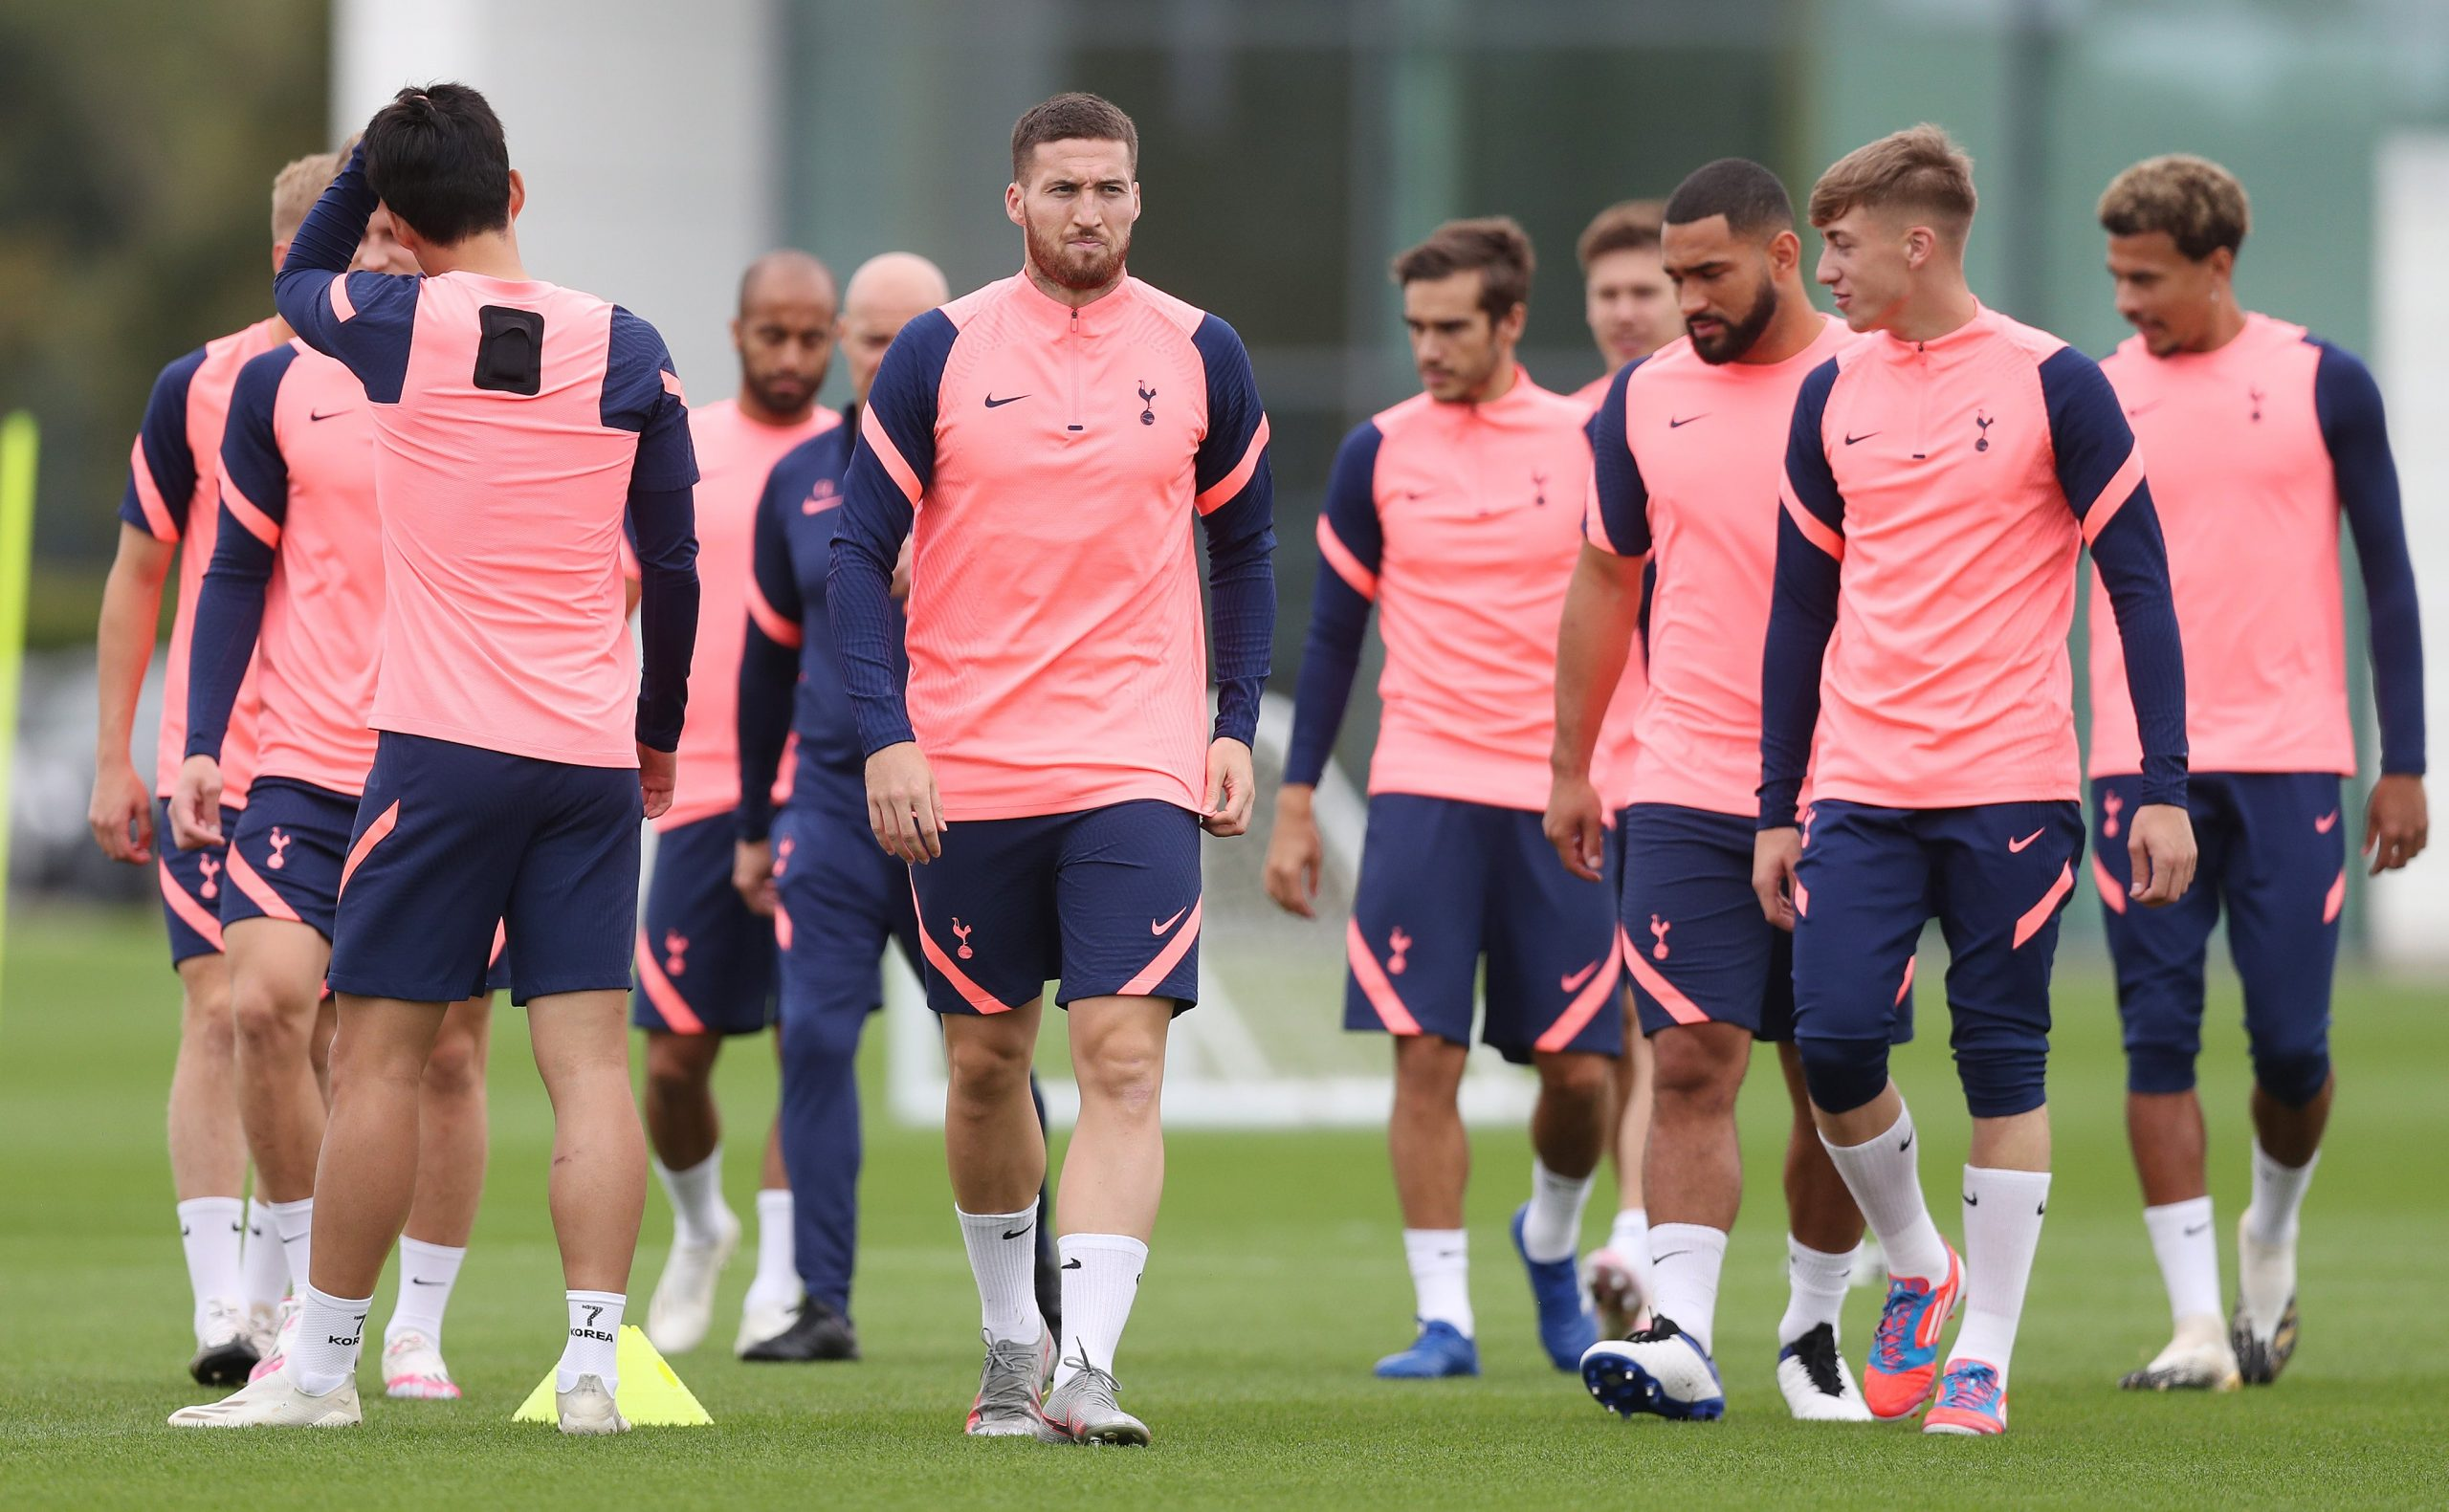 Tottenham players in training. (Twitter/SpursOfficial)